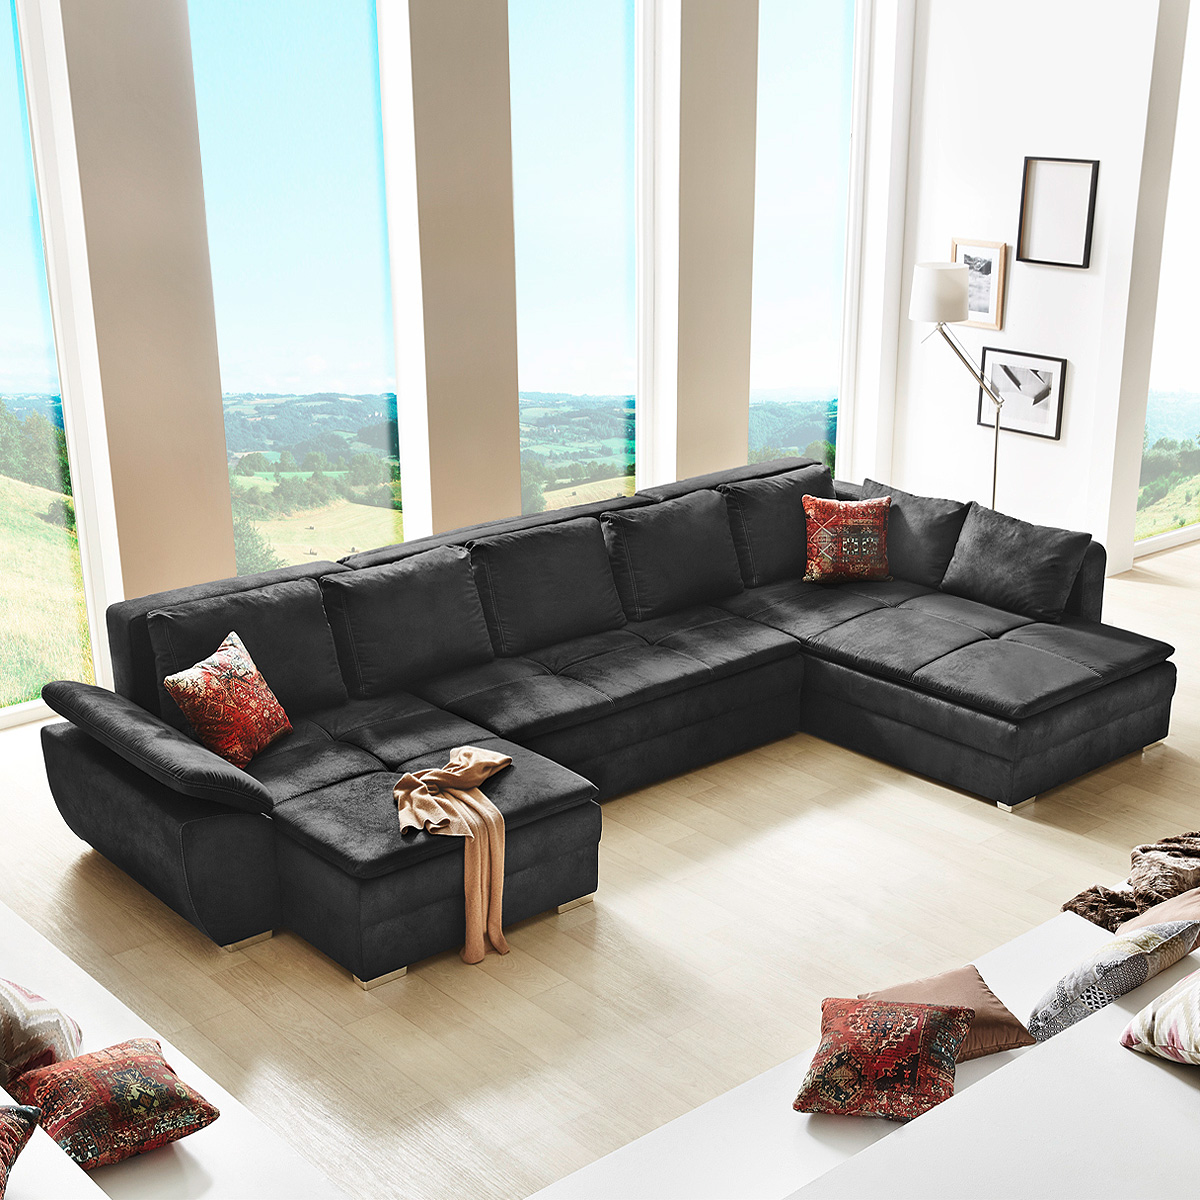 wohnlandschaft saragossa sofa ecksofa in schwarz. Black Bedroom Furniture Sets. Home Design Ideas